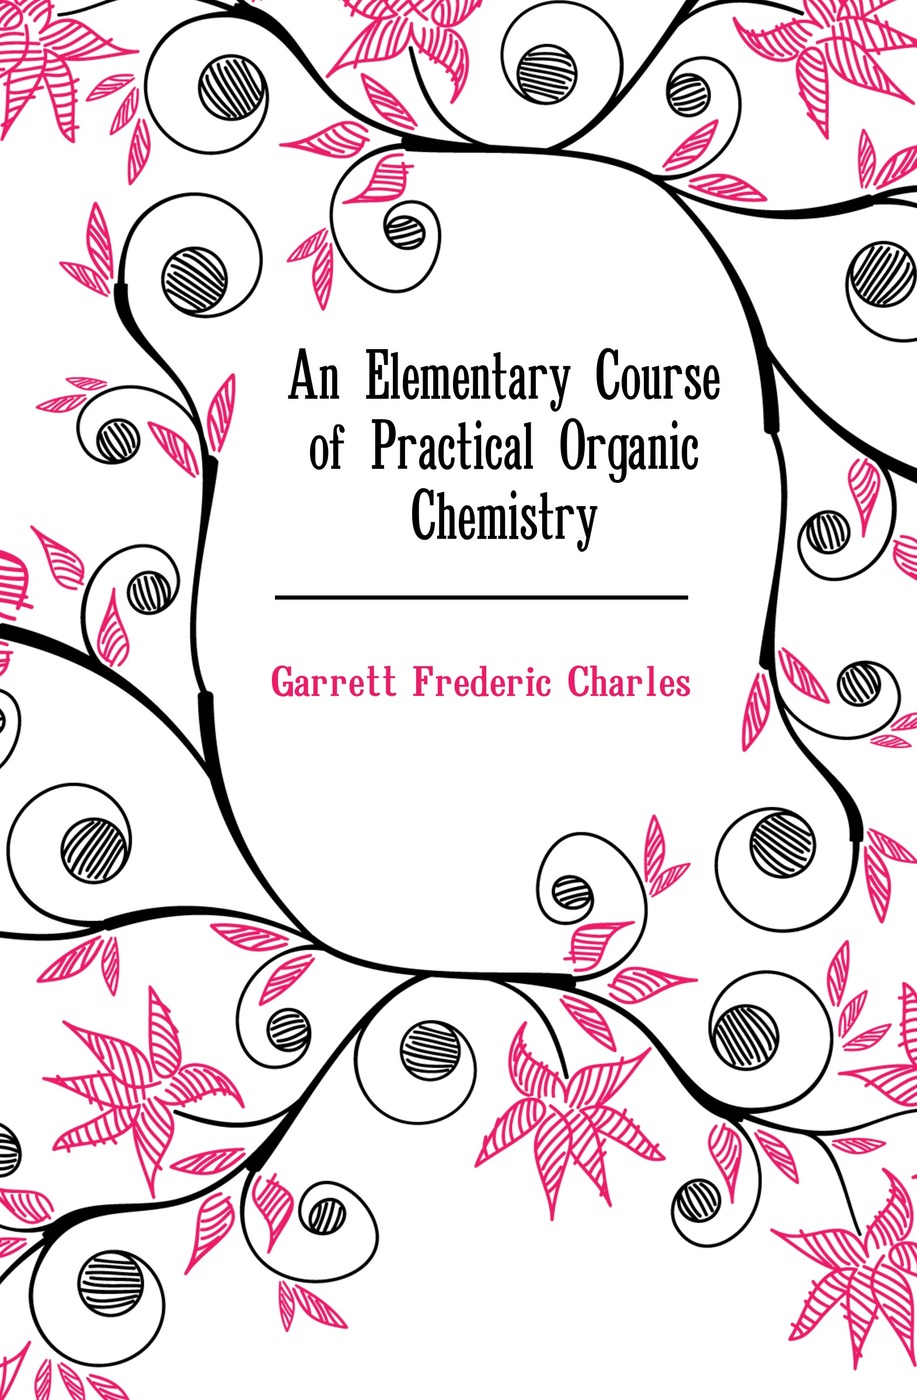 Garrett Frederic Charles An Elementary Course of Practical Organic Chemistry richard langley h organic chemistry ii for dummies